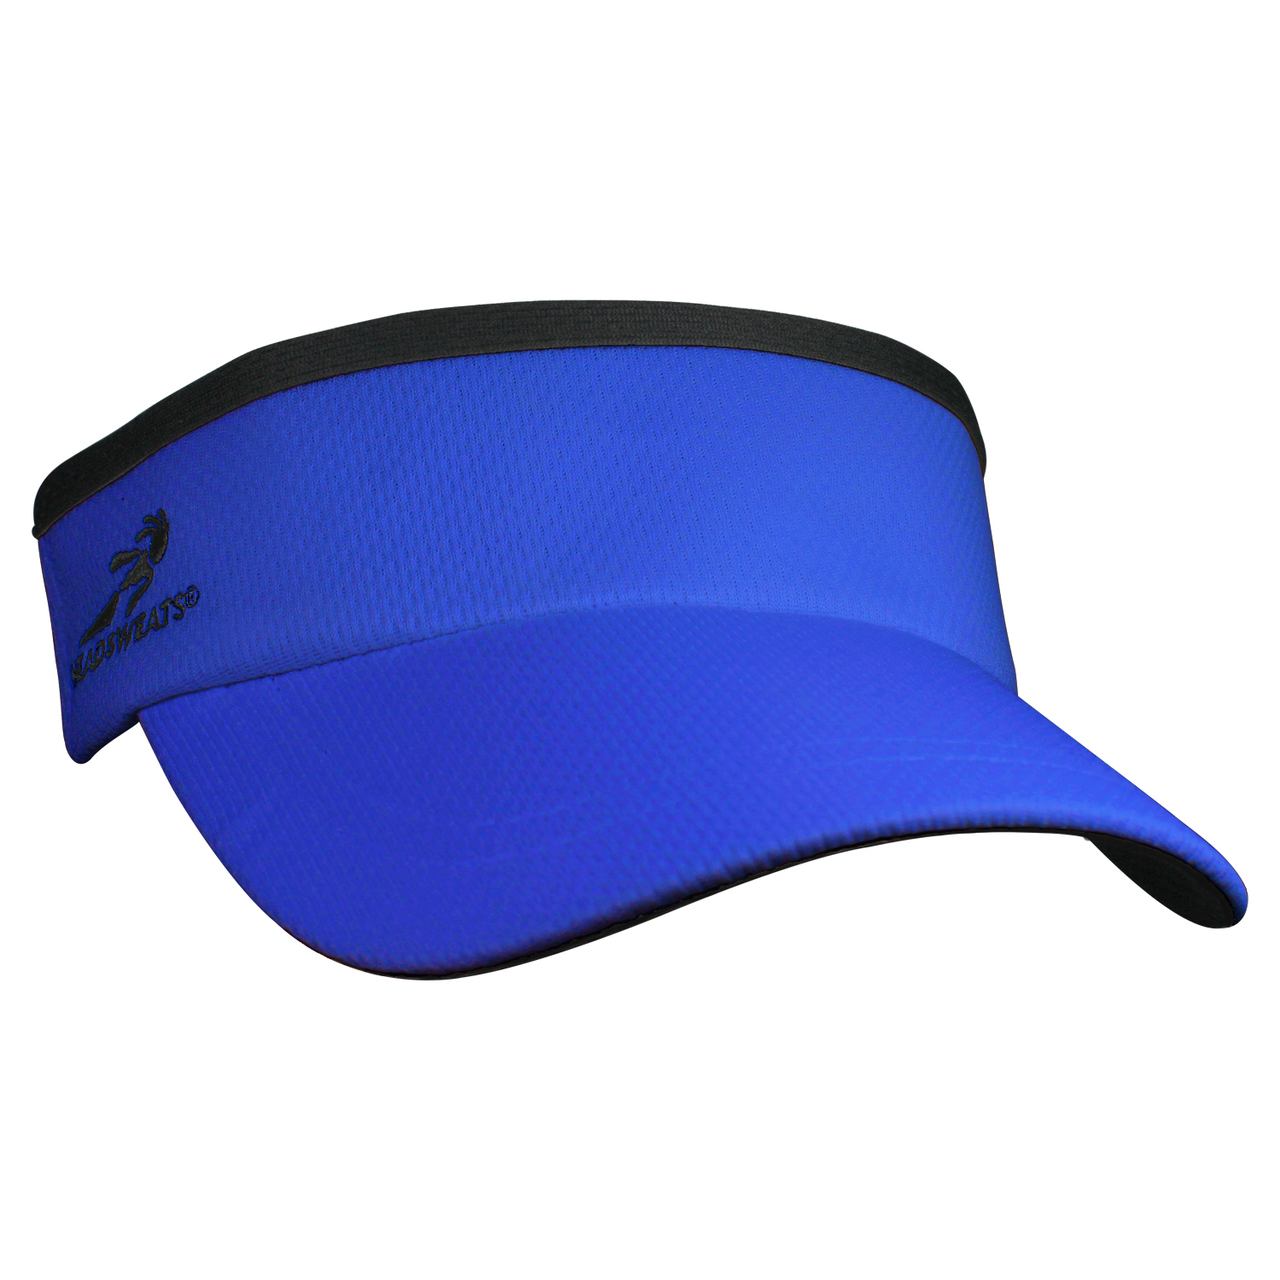 1de707bff2c HeadSweats Supervisor with Coolmax - The Warming Store